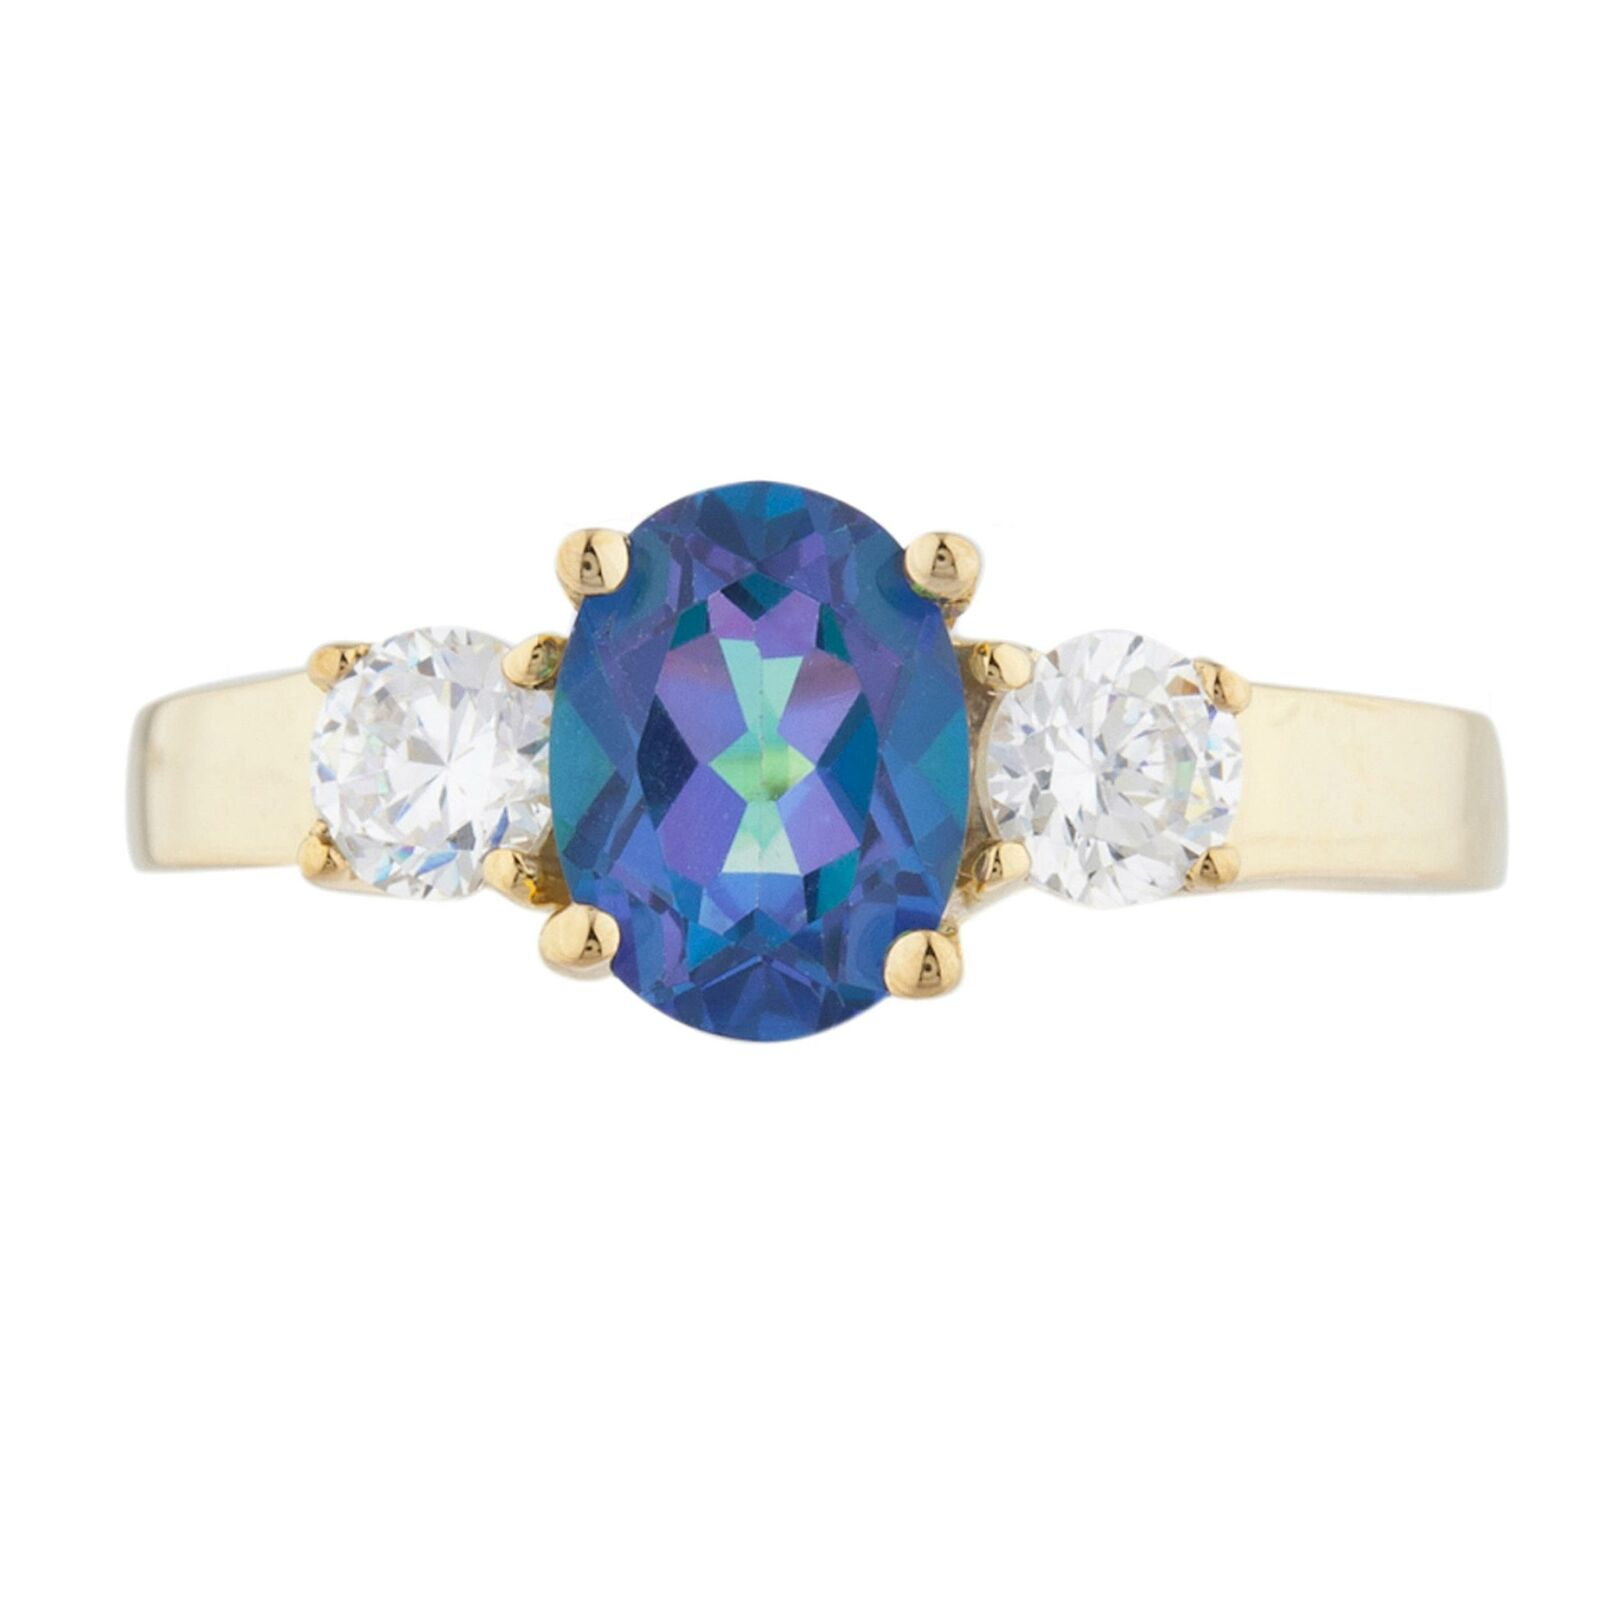 14Kt gold 2 Ct Natural bluee Mystic Topaz & Zirconia Oval Ring